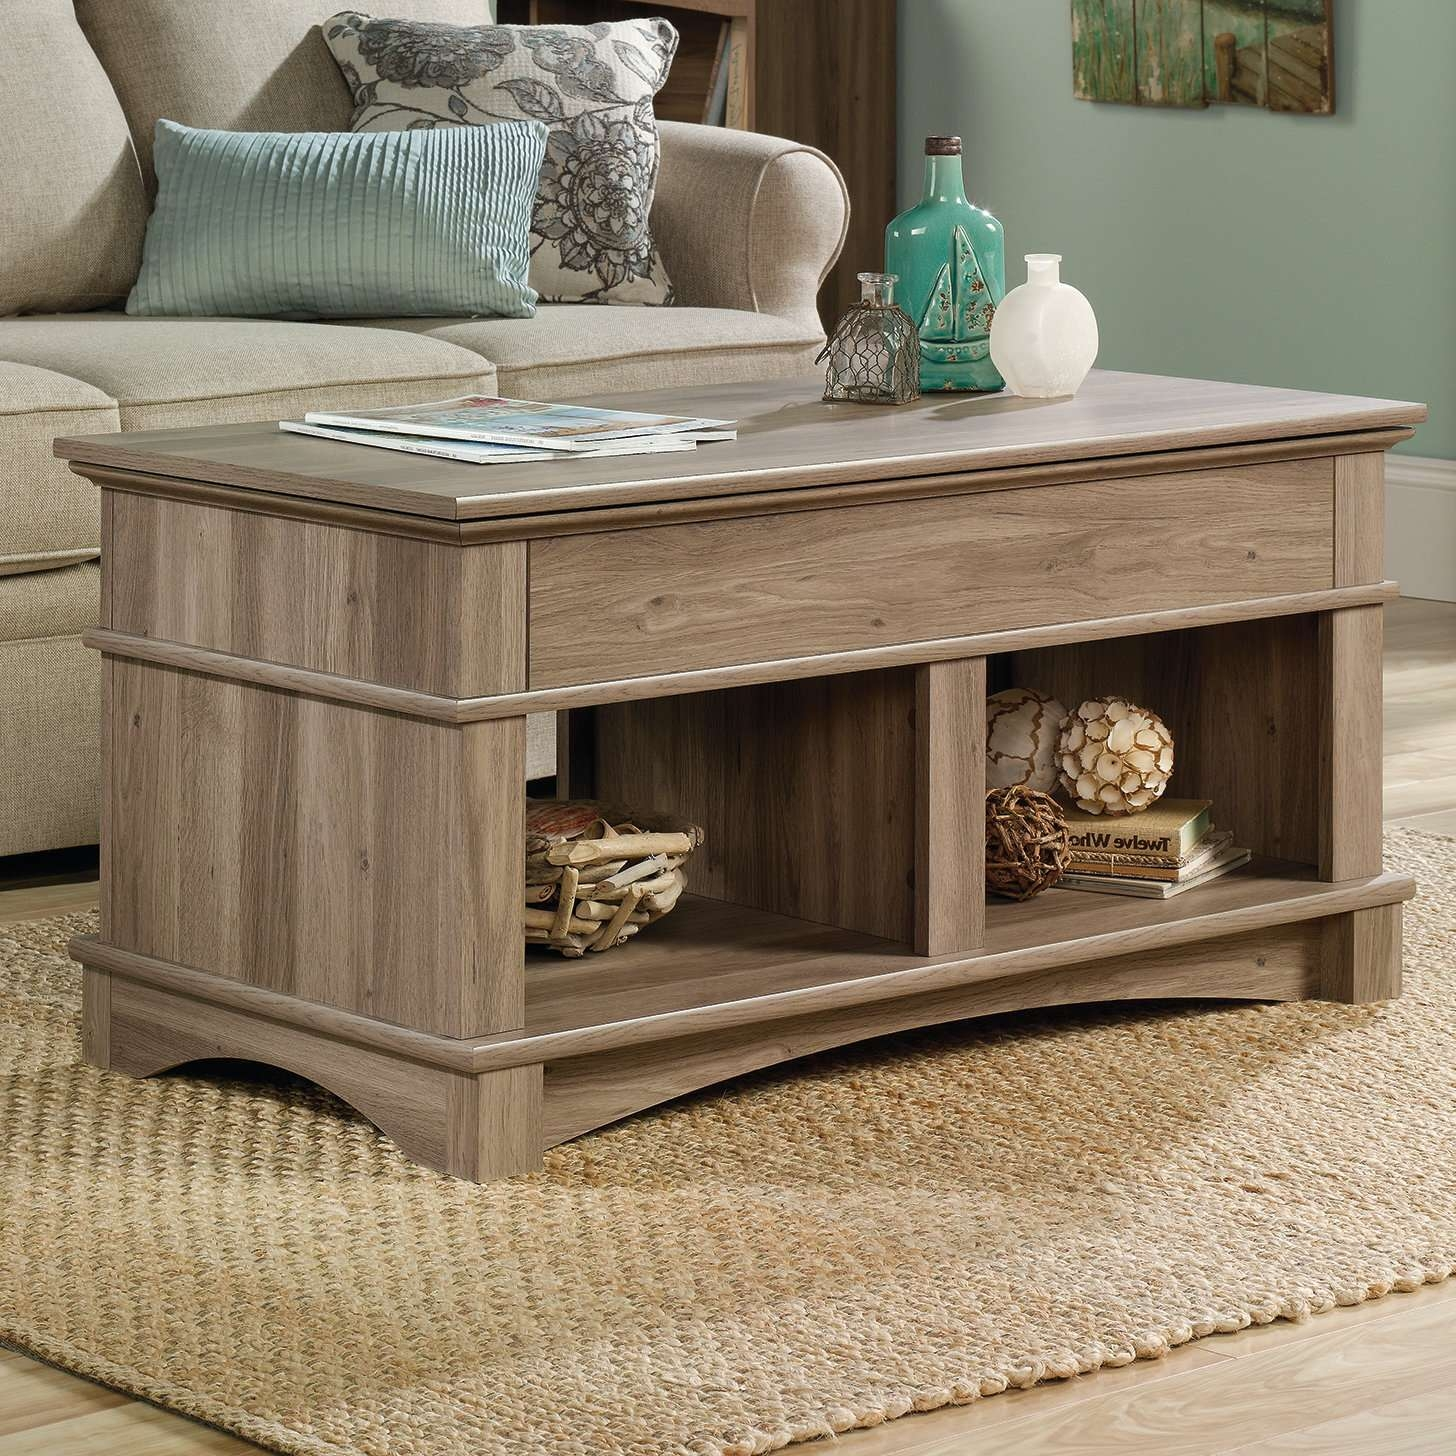 Lift Top Coffee Tables You'll Love (View 17 of 20)